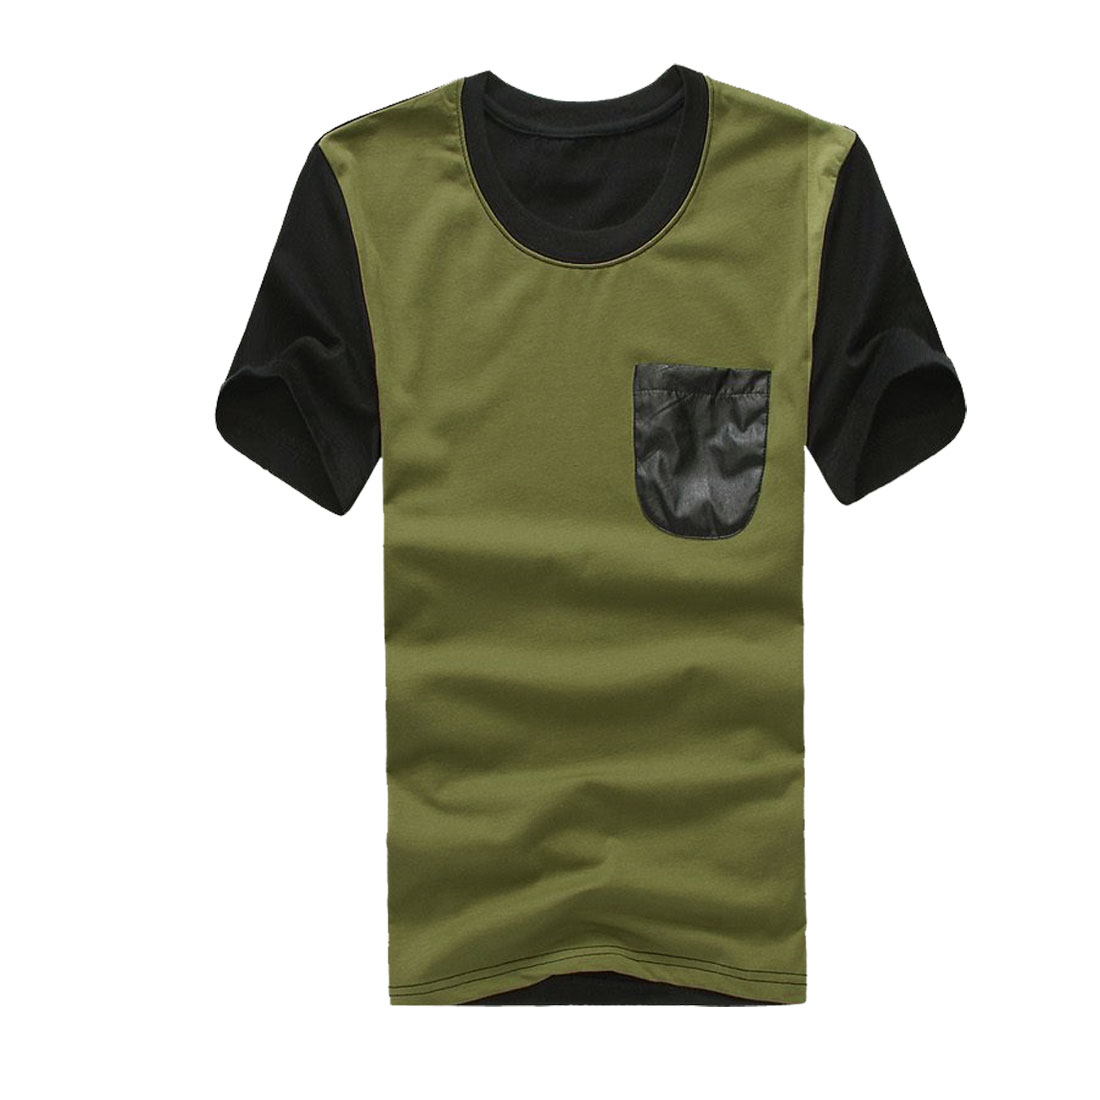 Man Round Neck Short Sleeve Spliced Chest Pocket Shirt Olive Green M